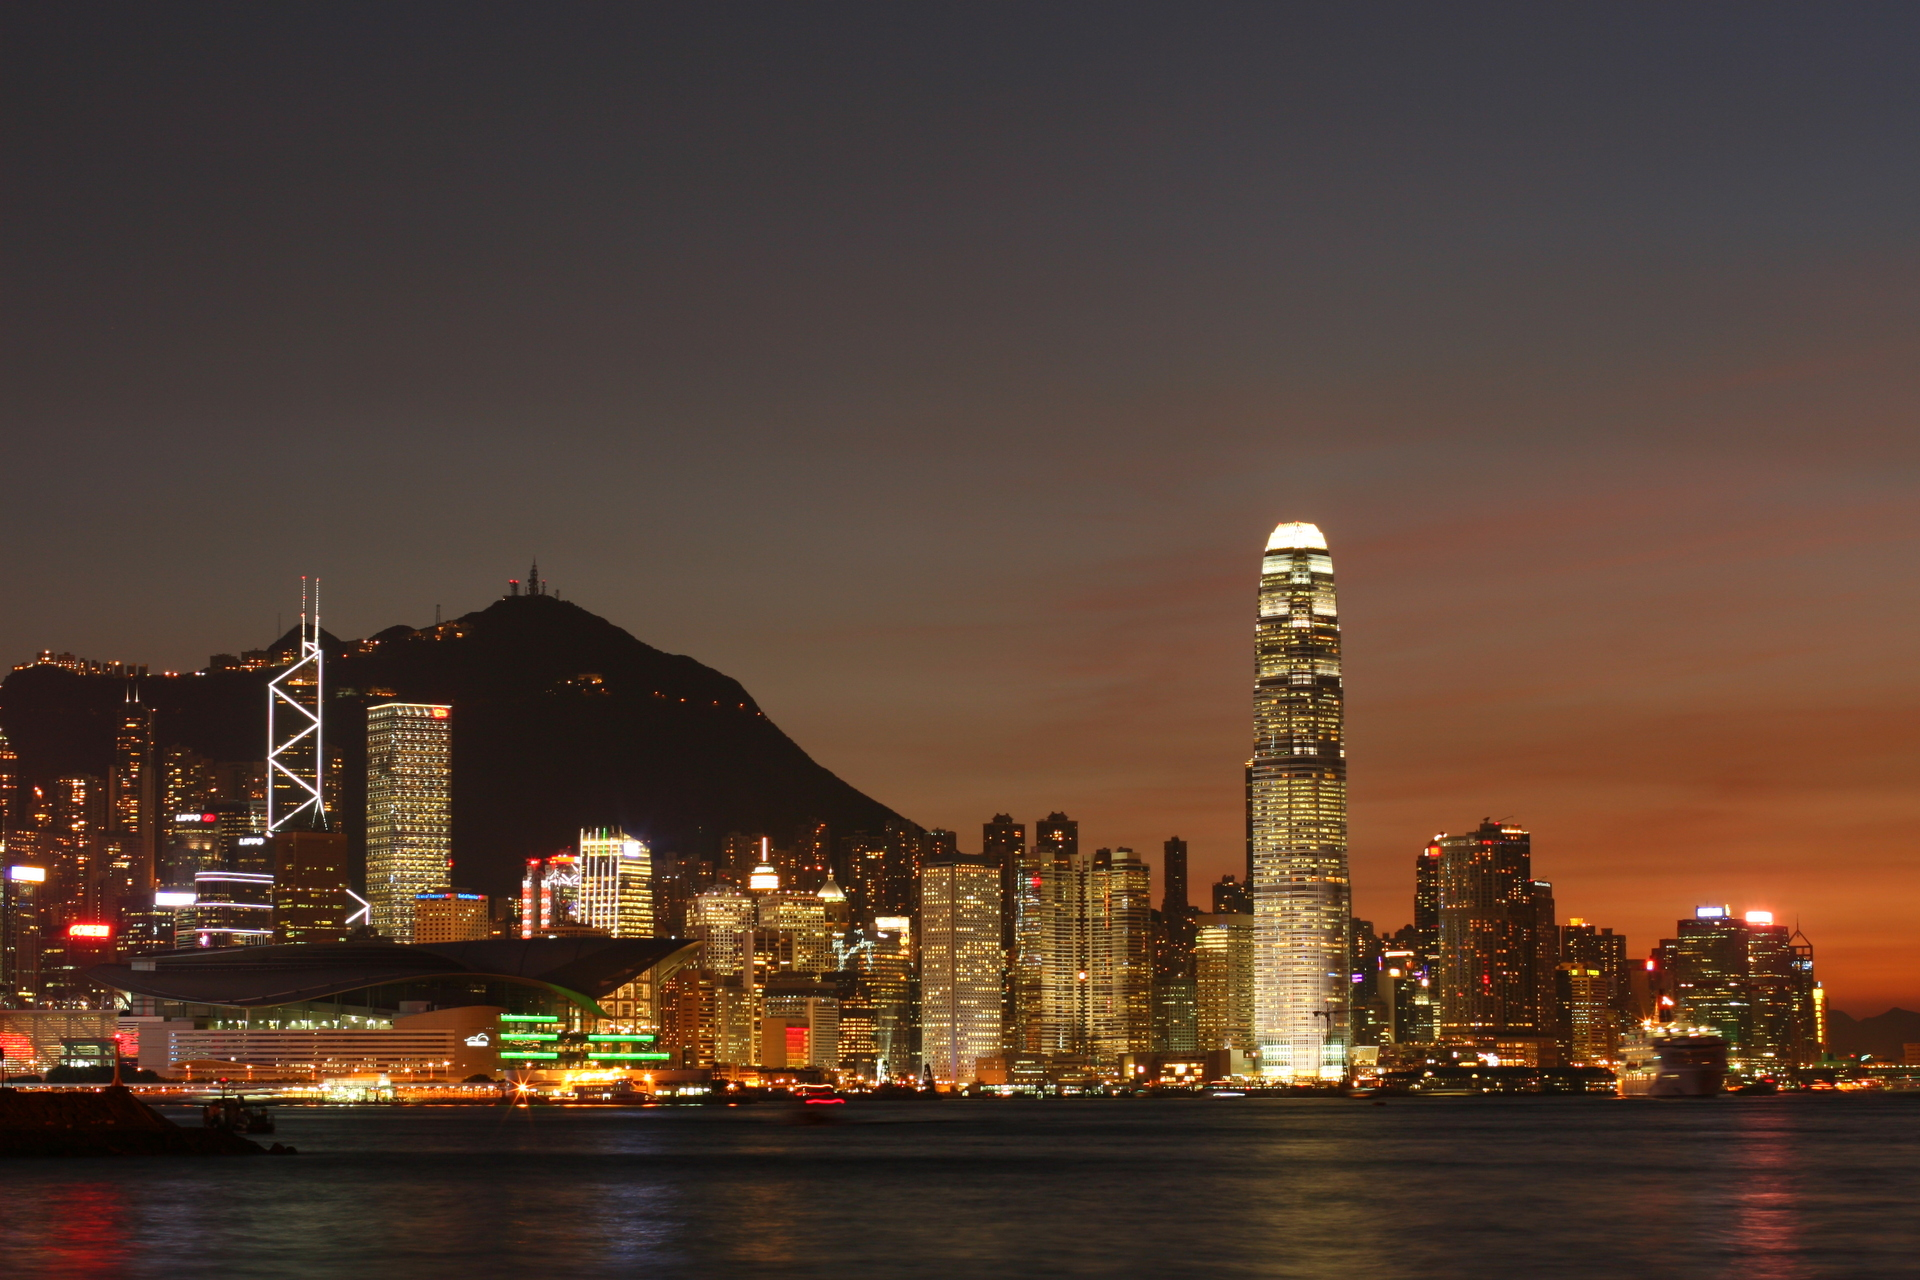 https://www.freeimages.com/photo/hong-kong-night-view-1227688 by Michael Pang - factasia.org pr